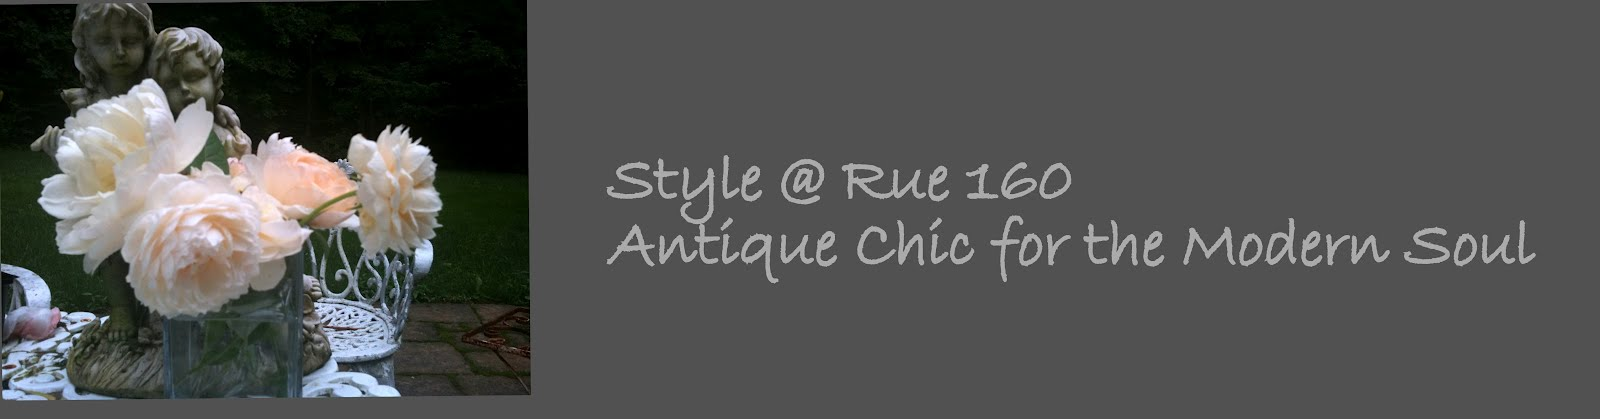 Style at Rue160, Antique Chic for the Modern Soul